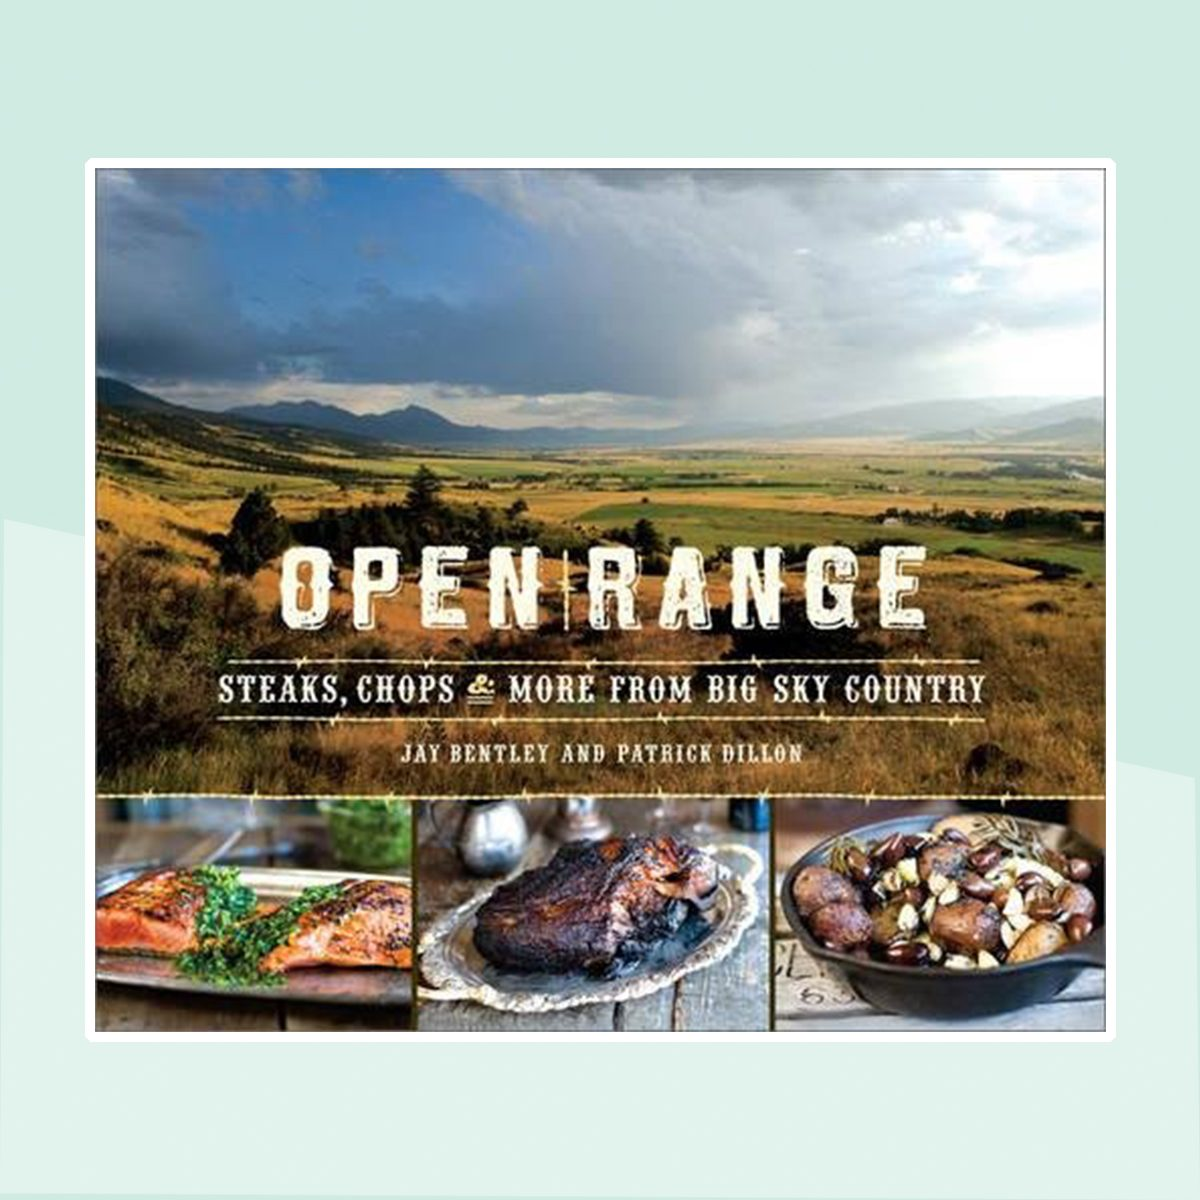 Open Range:Steaks, Chops, and More from Big Sky Country